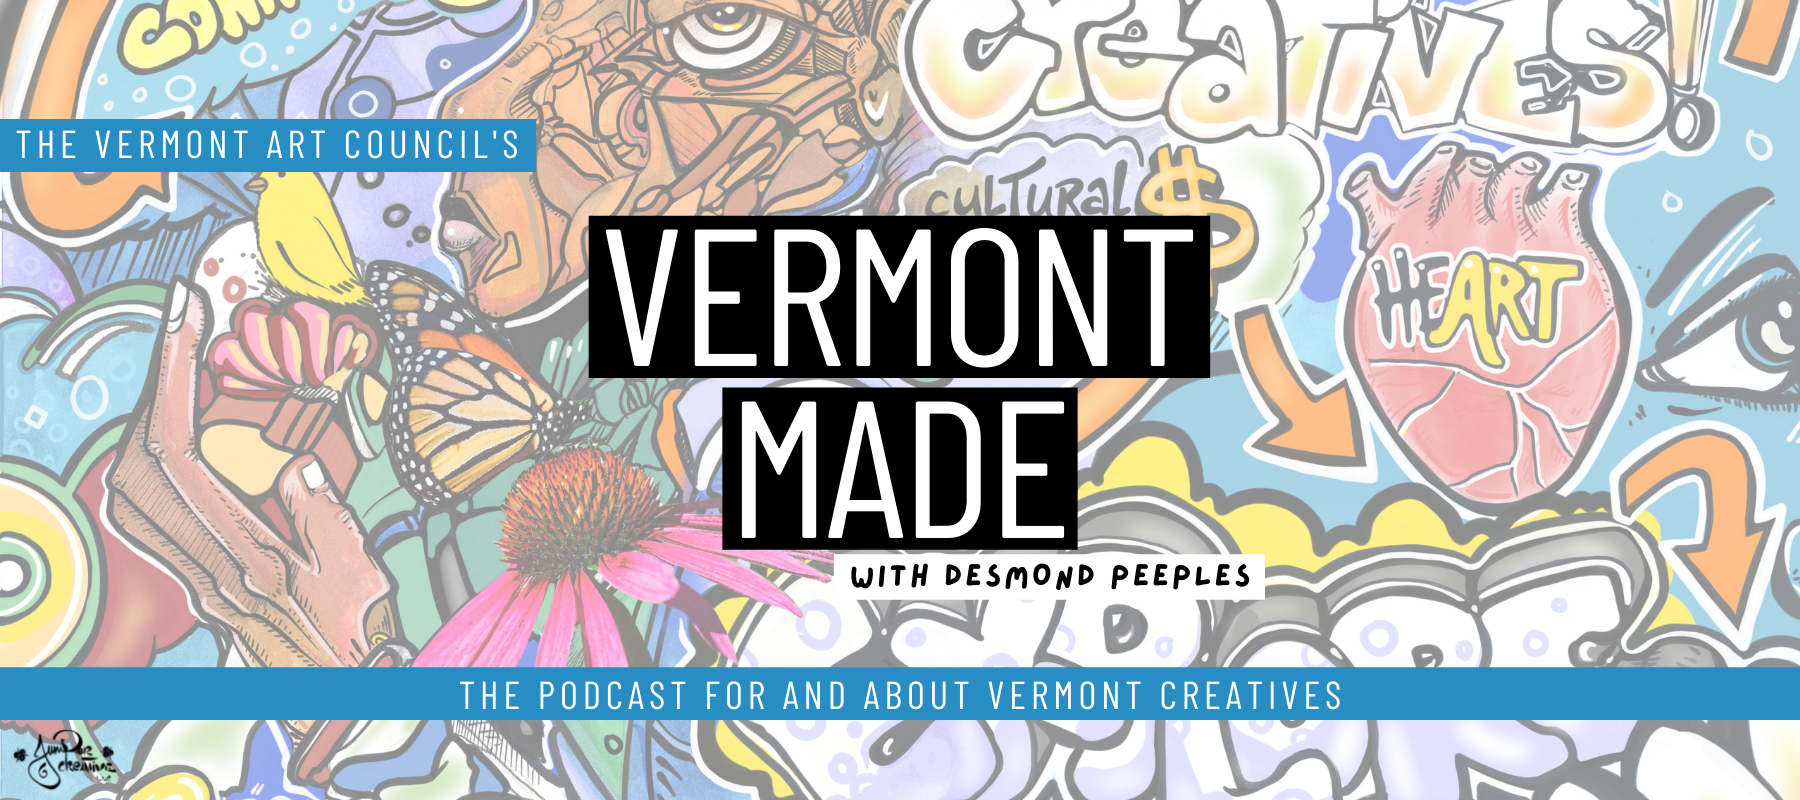 """Original artwork by Juniper Creative overlaid with text reading, """"The Vermont Arts Council's Vermont Made with Desmond Peeples, the podcast for and about Vermont Creatives"""""""